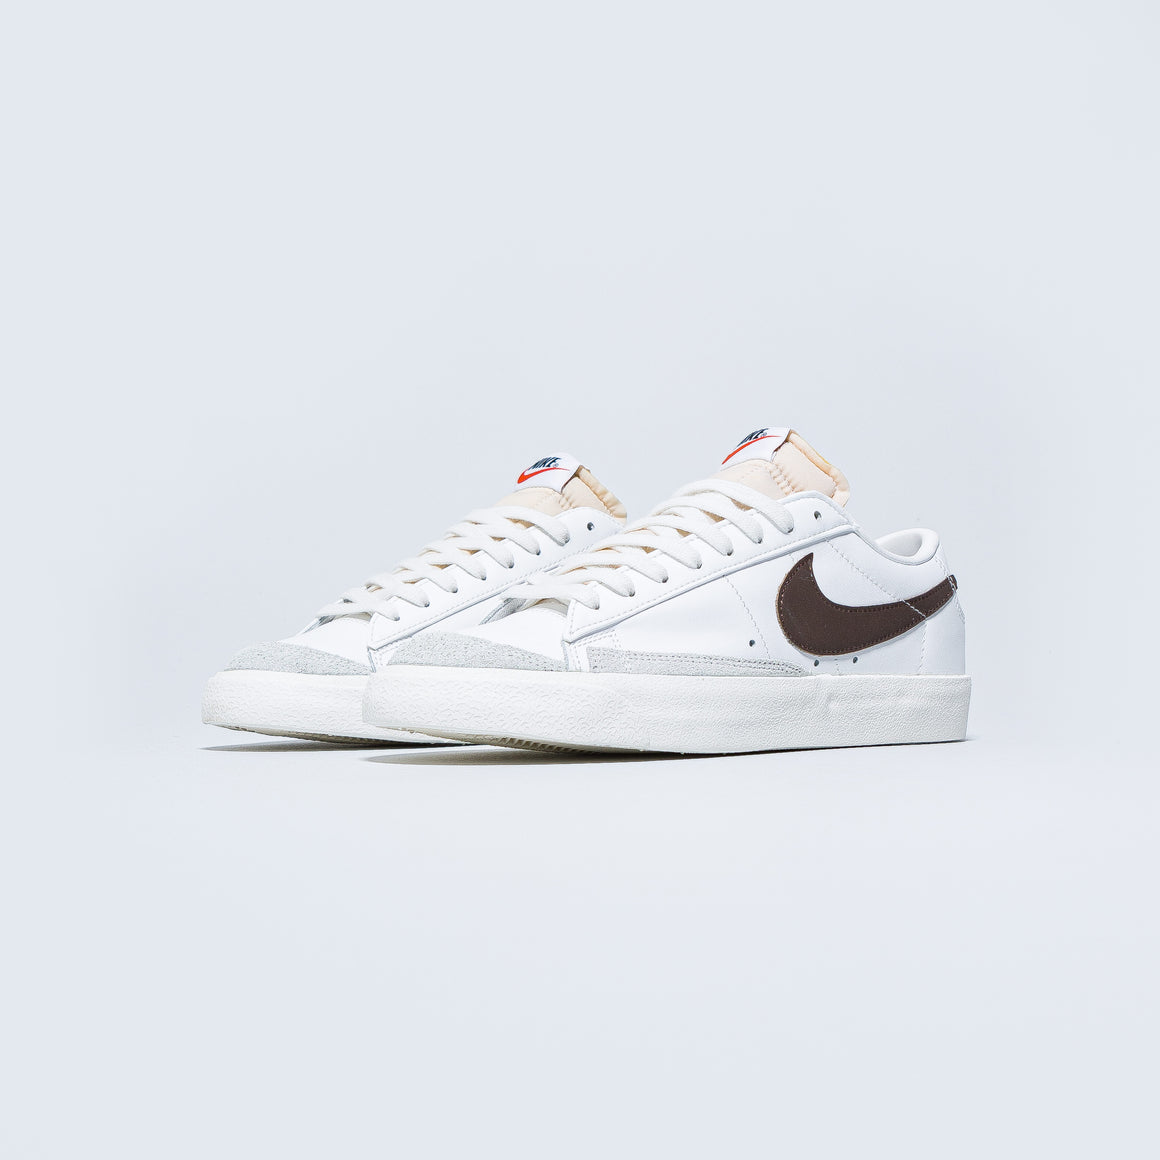 Nike - Blazer Low '77 VNTG - Summit White/Chocolate - Up There